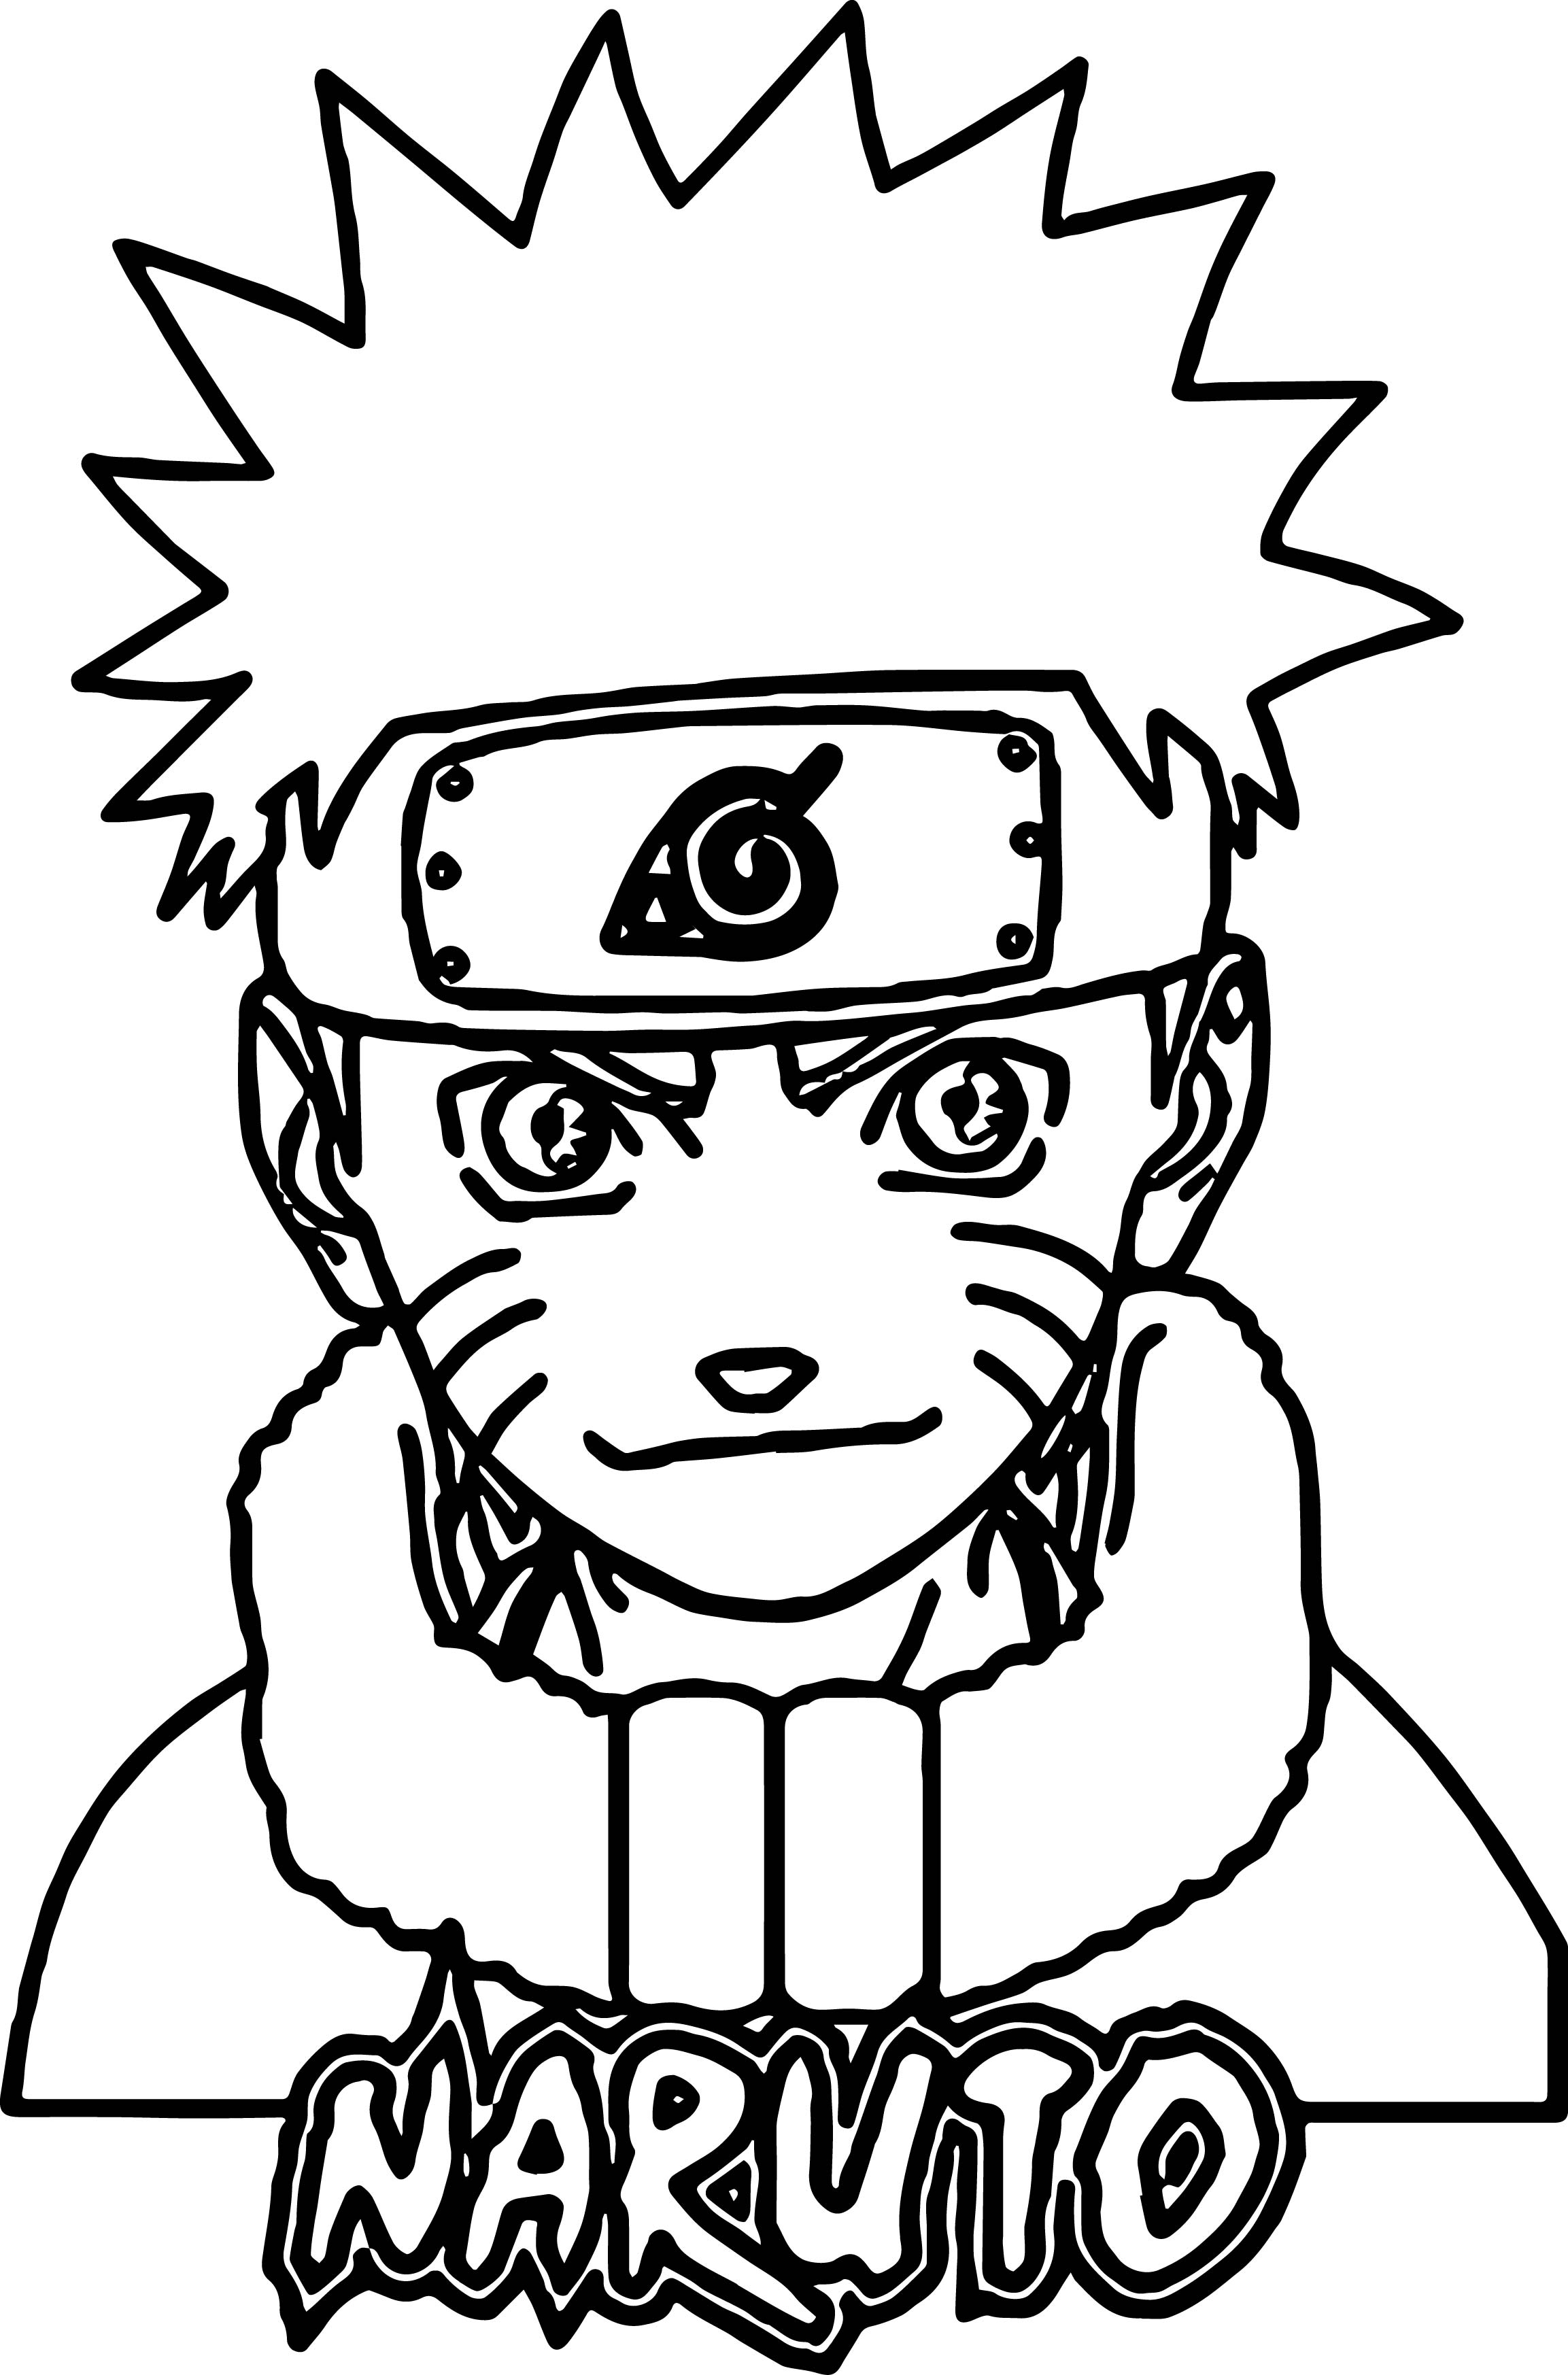 Naruto Coloring Pages Alluring Anime Naruto Coloring Page  Wecoloringpage Decorating Inspiration